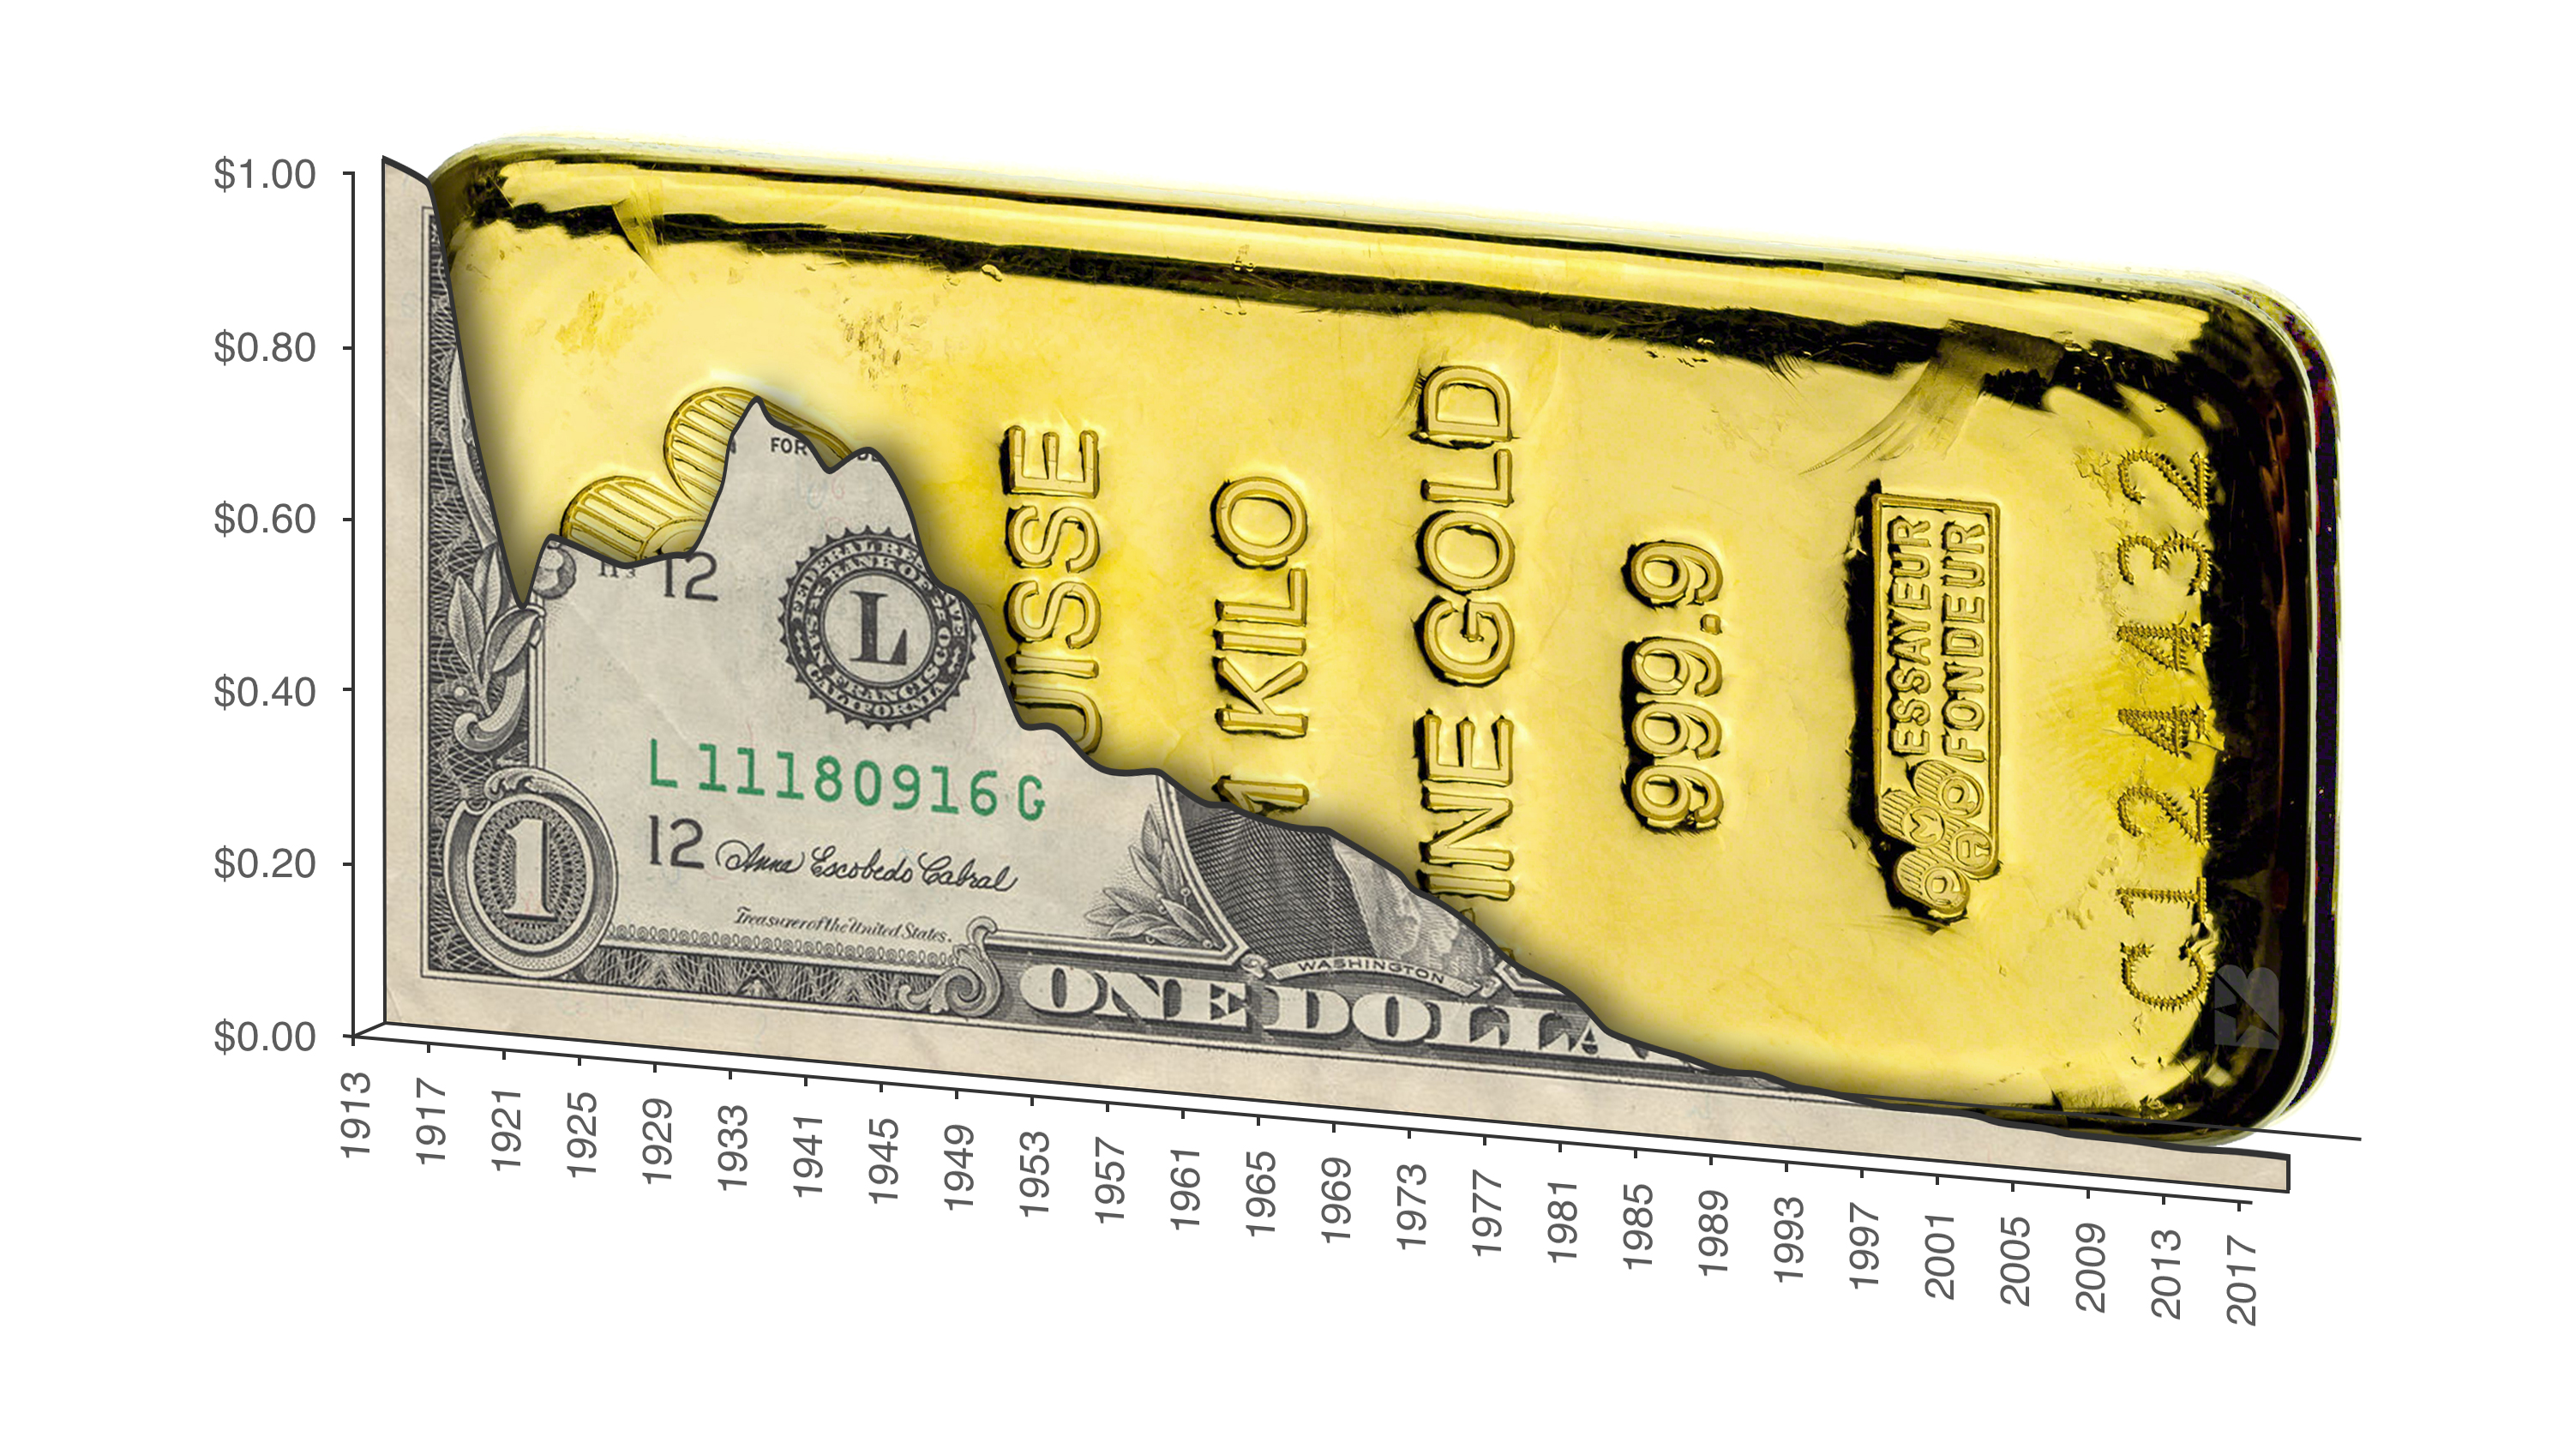 The Us Dollar Has Lost More Than 98 Of Its Value Since 1913 While Gold Retained